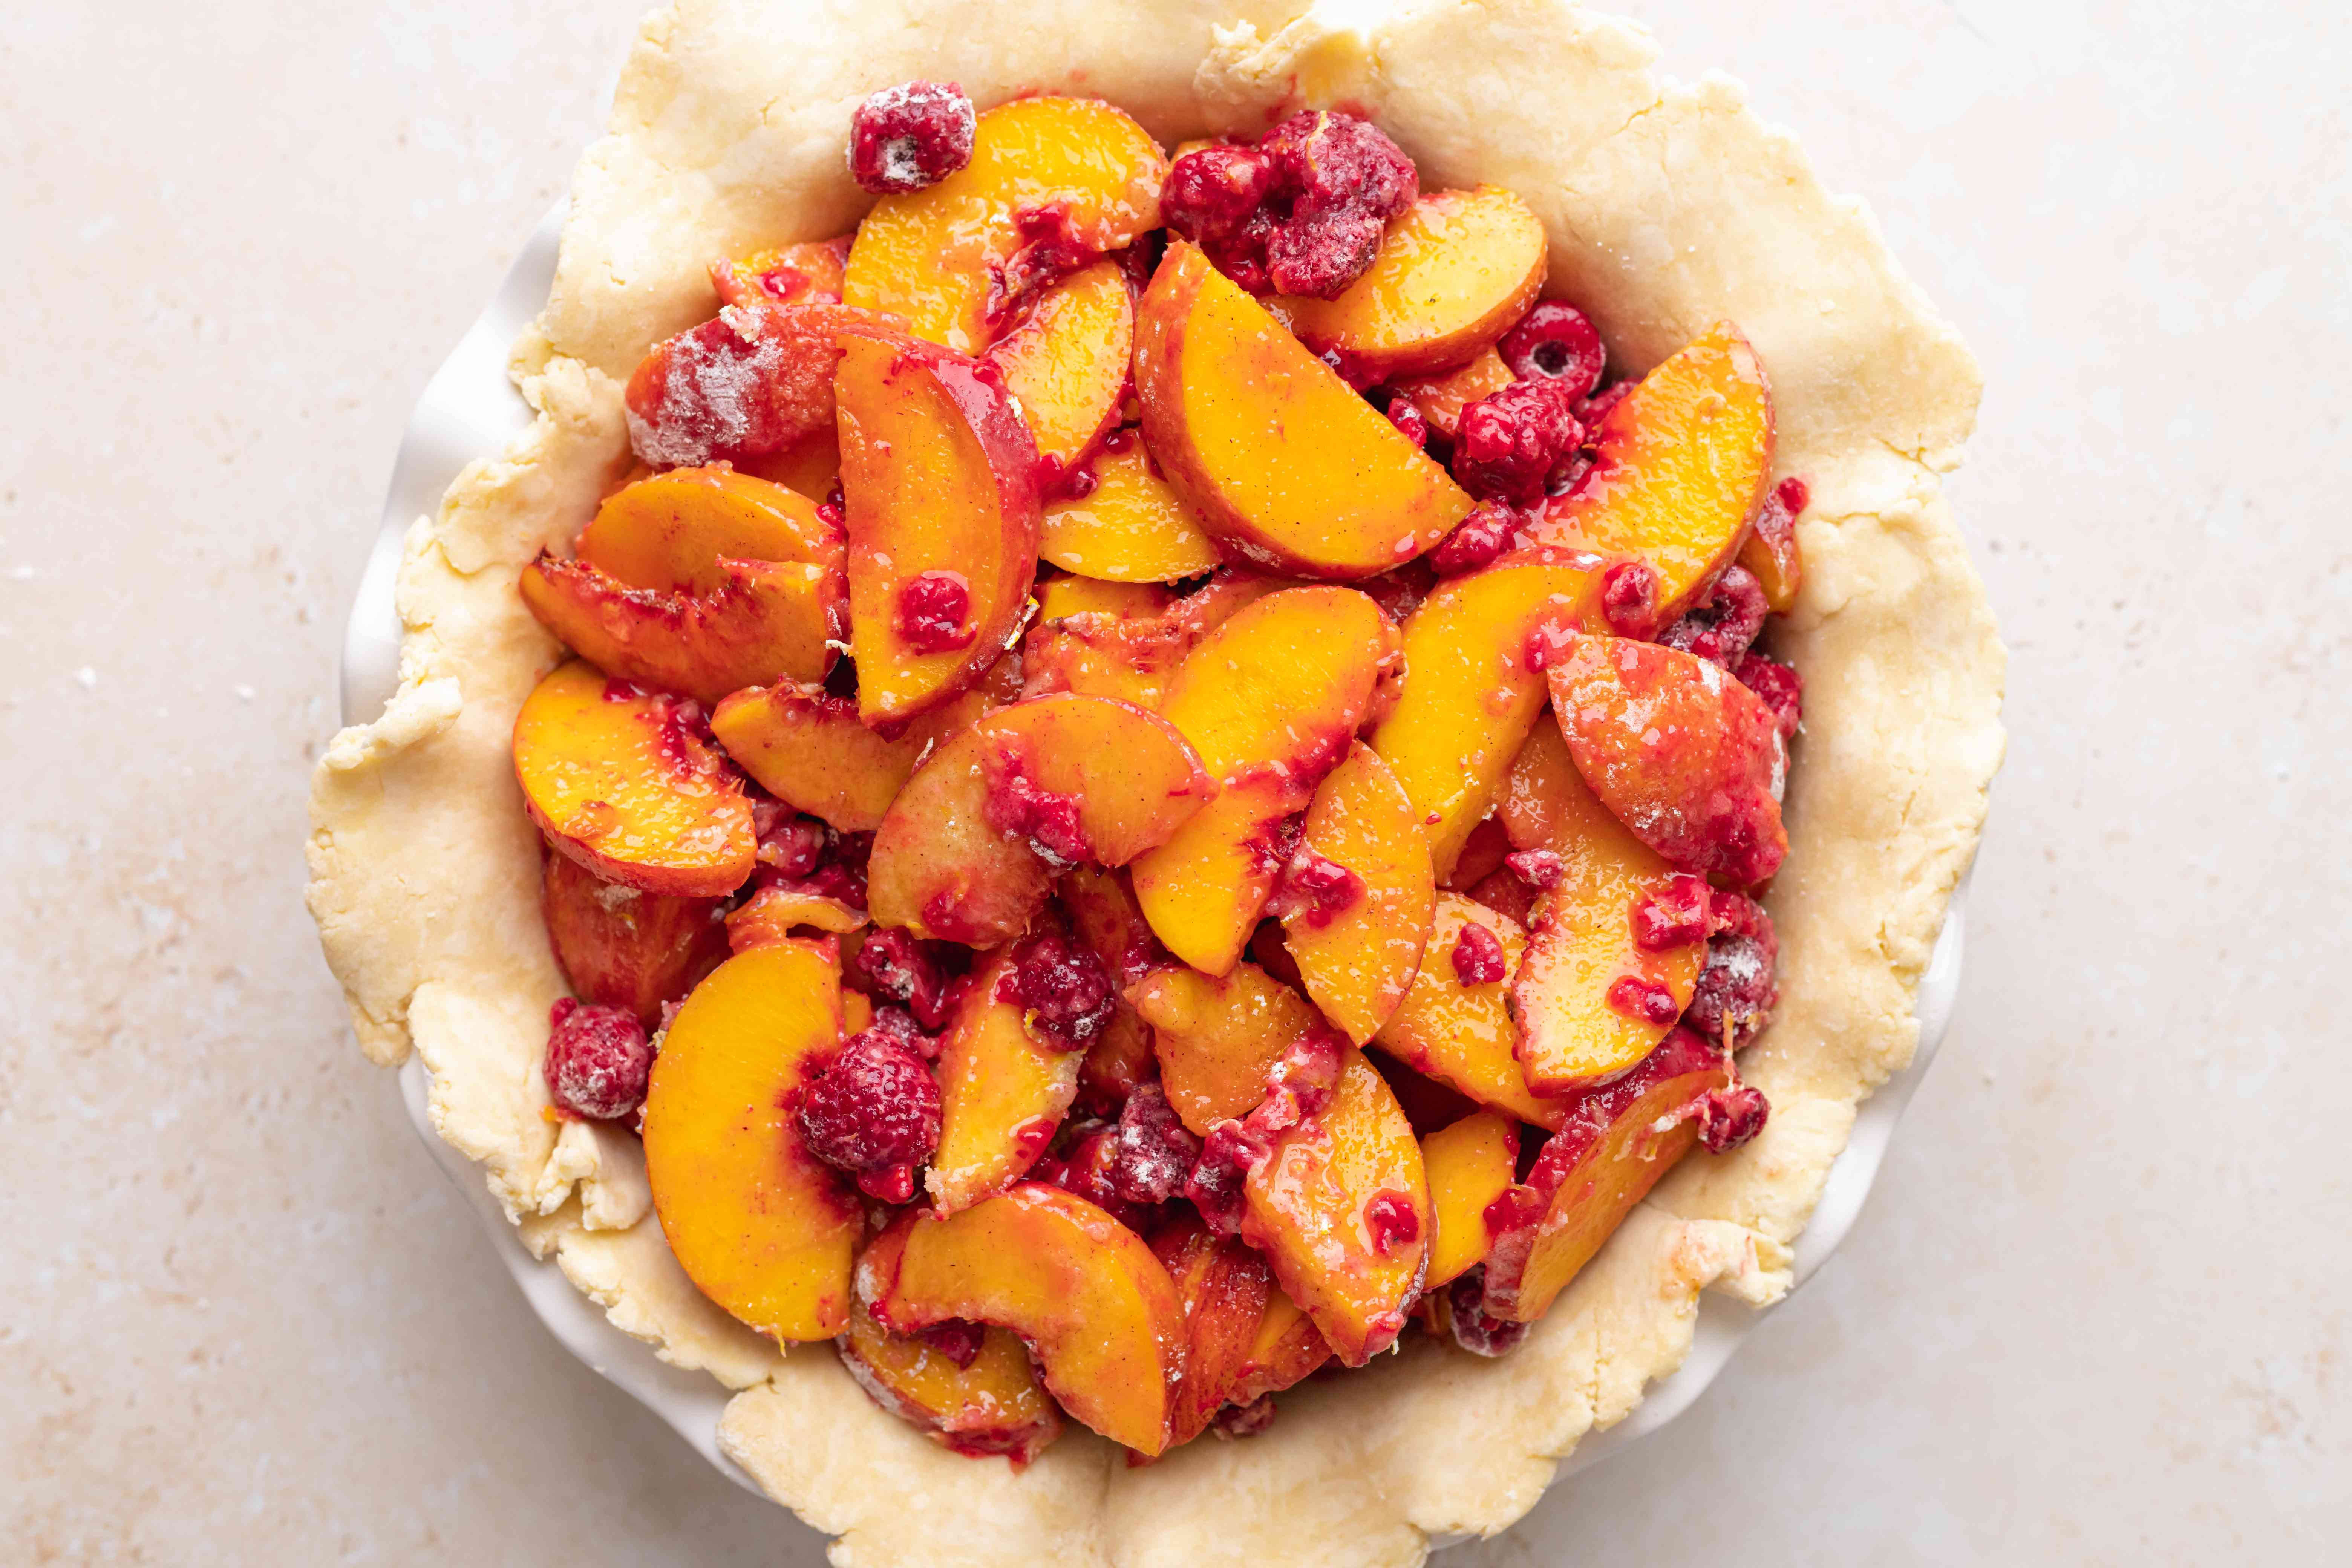 A pie crust filled stone fruit and berry filling to make a pie